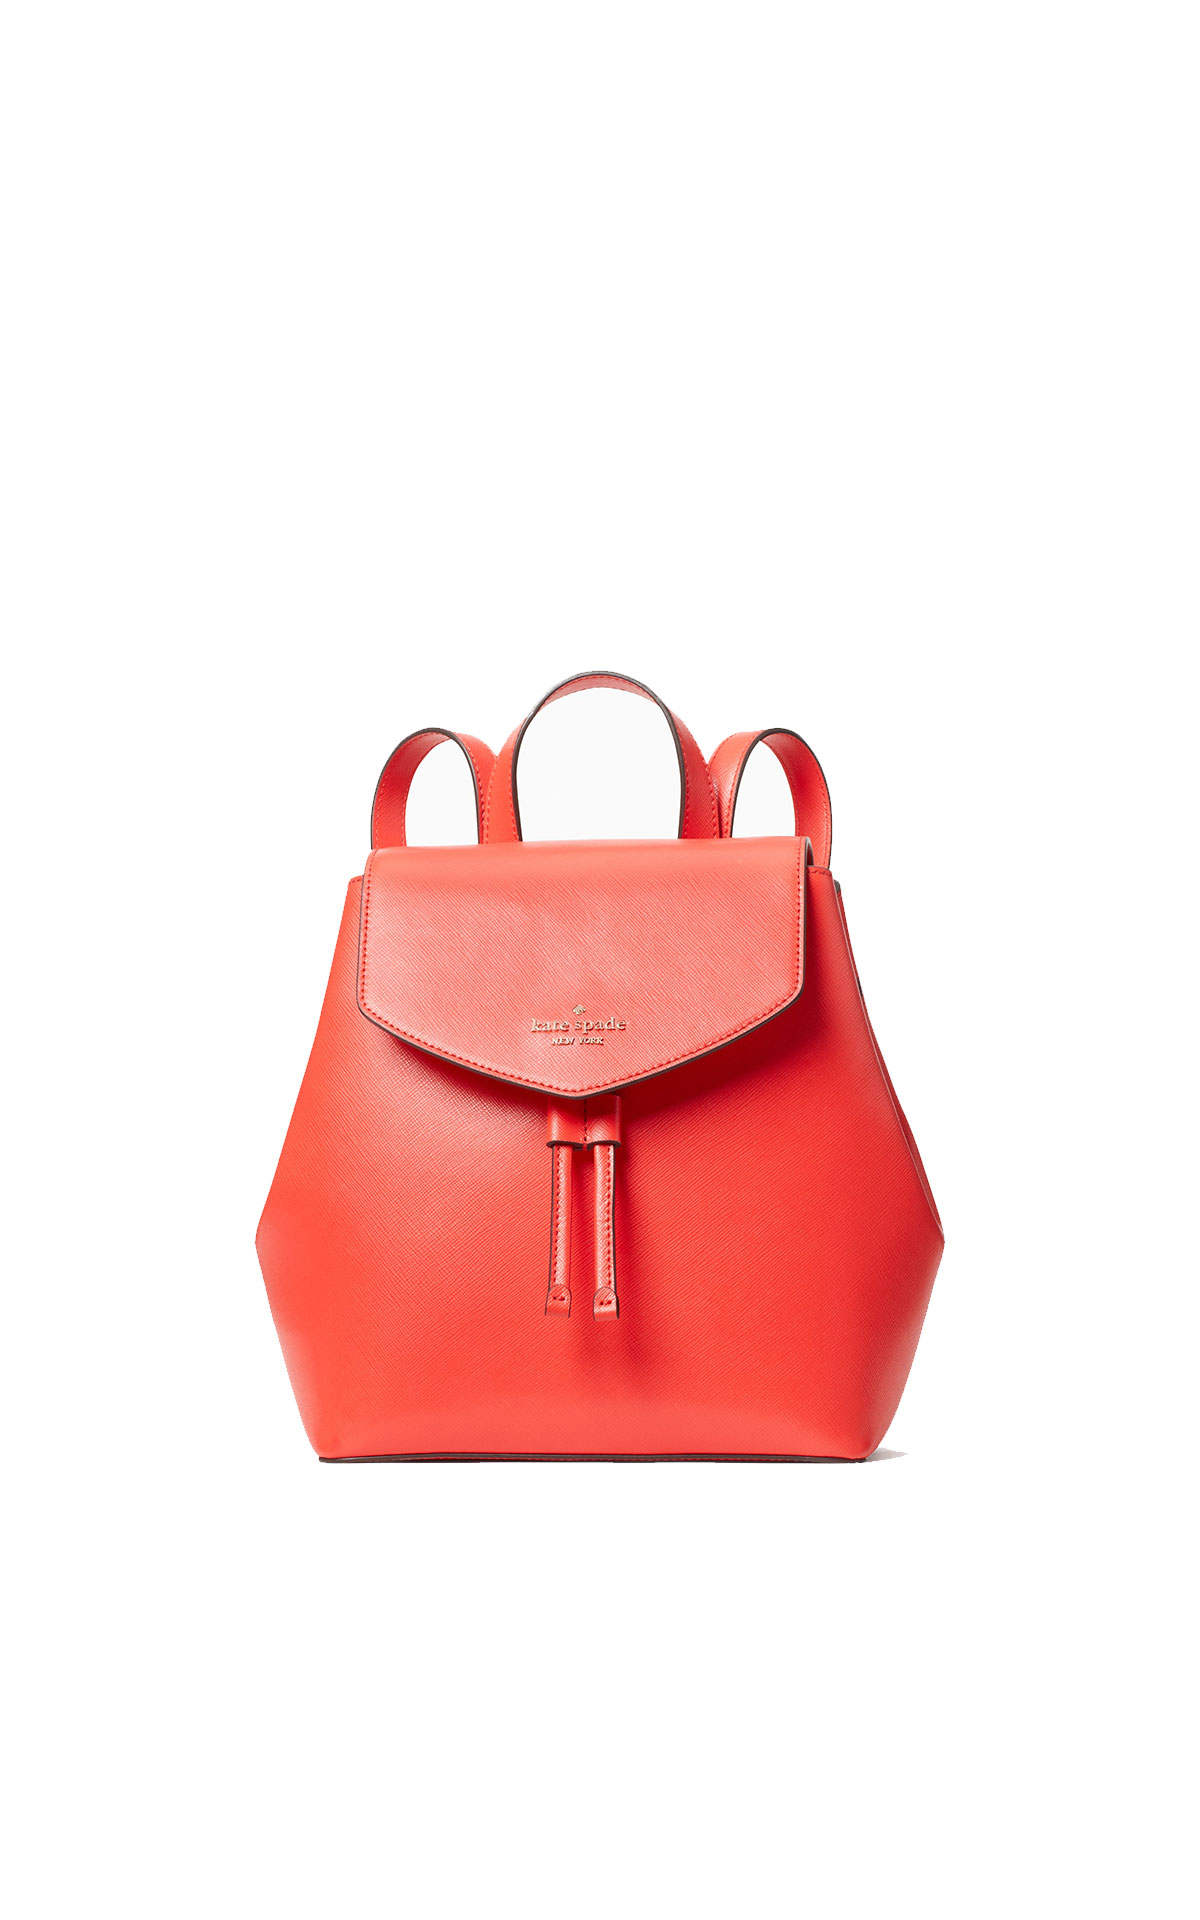 kate spade new york Lizzie medium flap backpack - geranium from Bicester Village